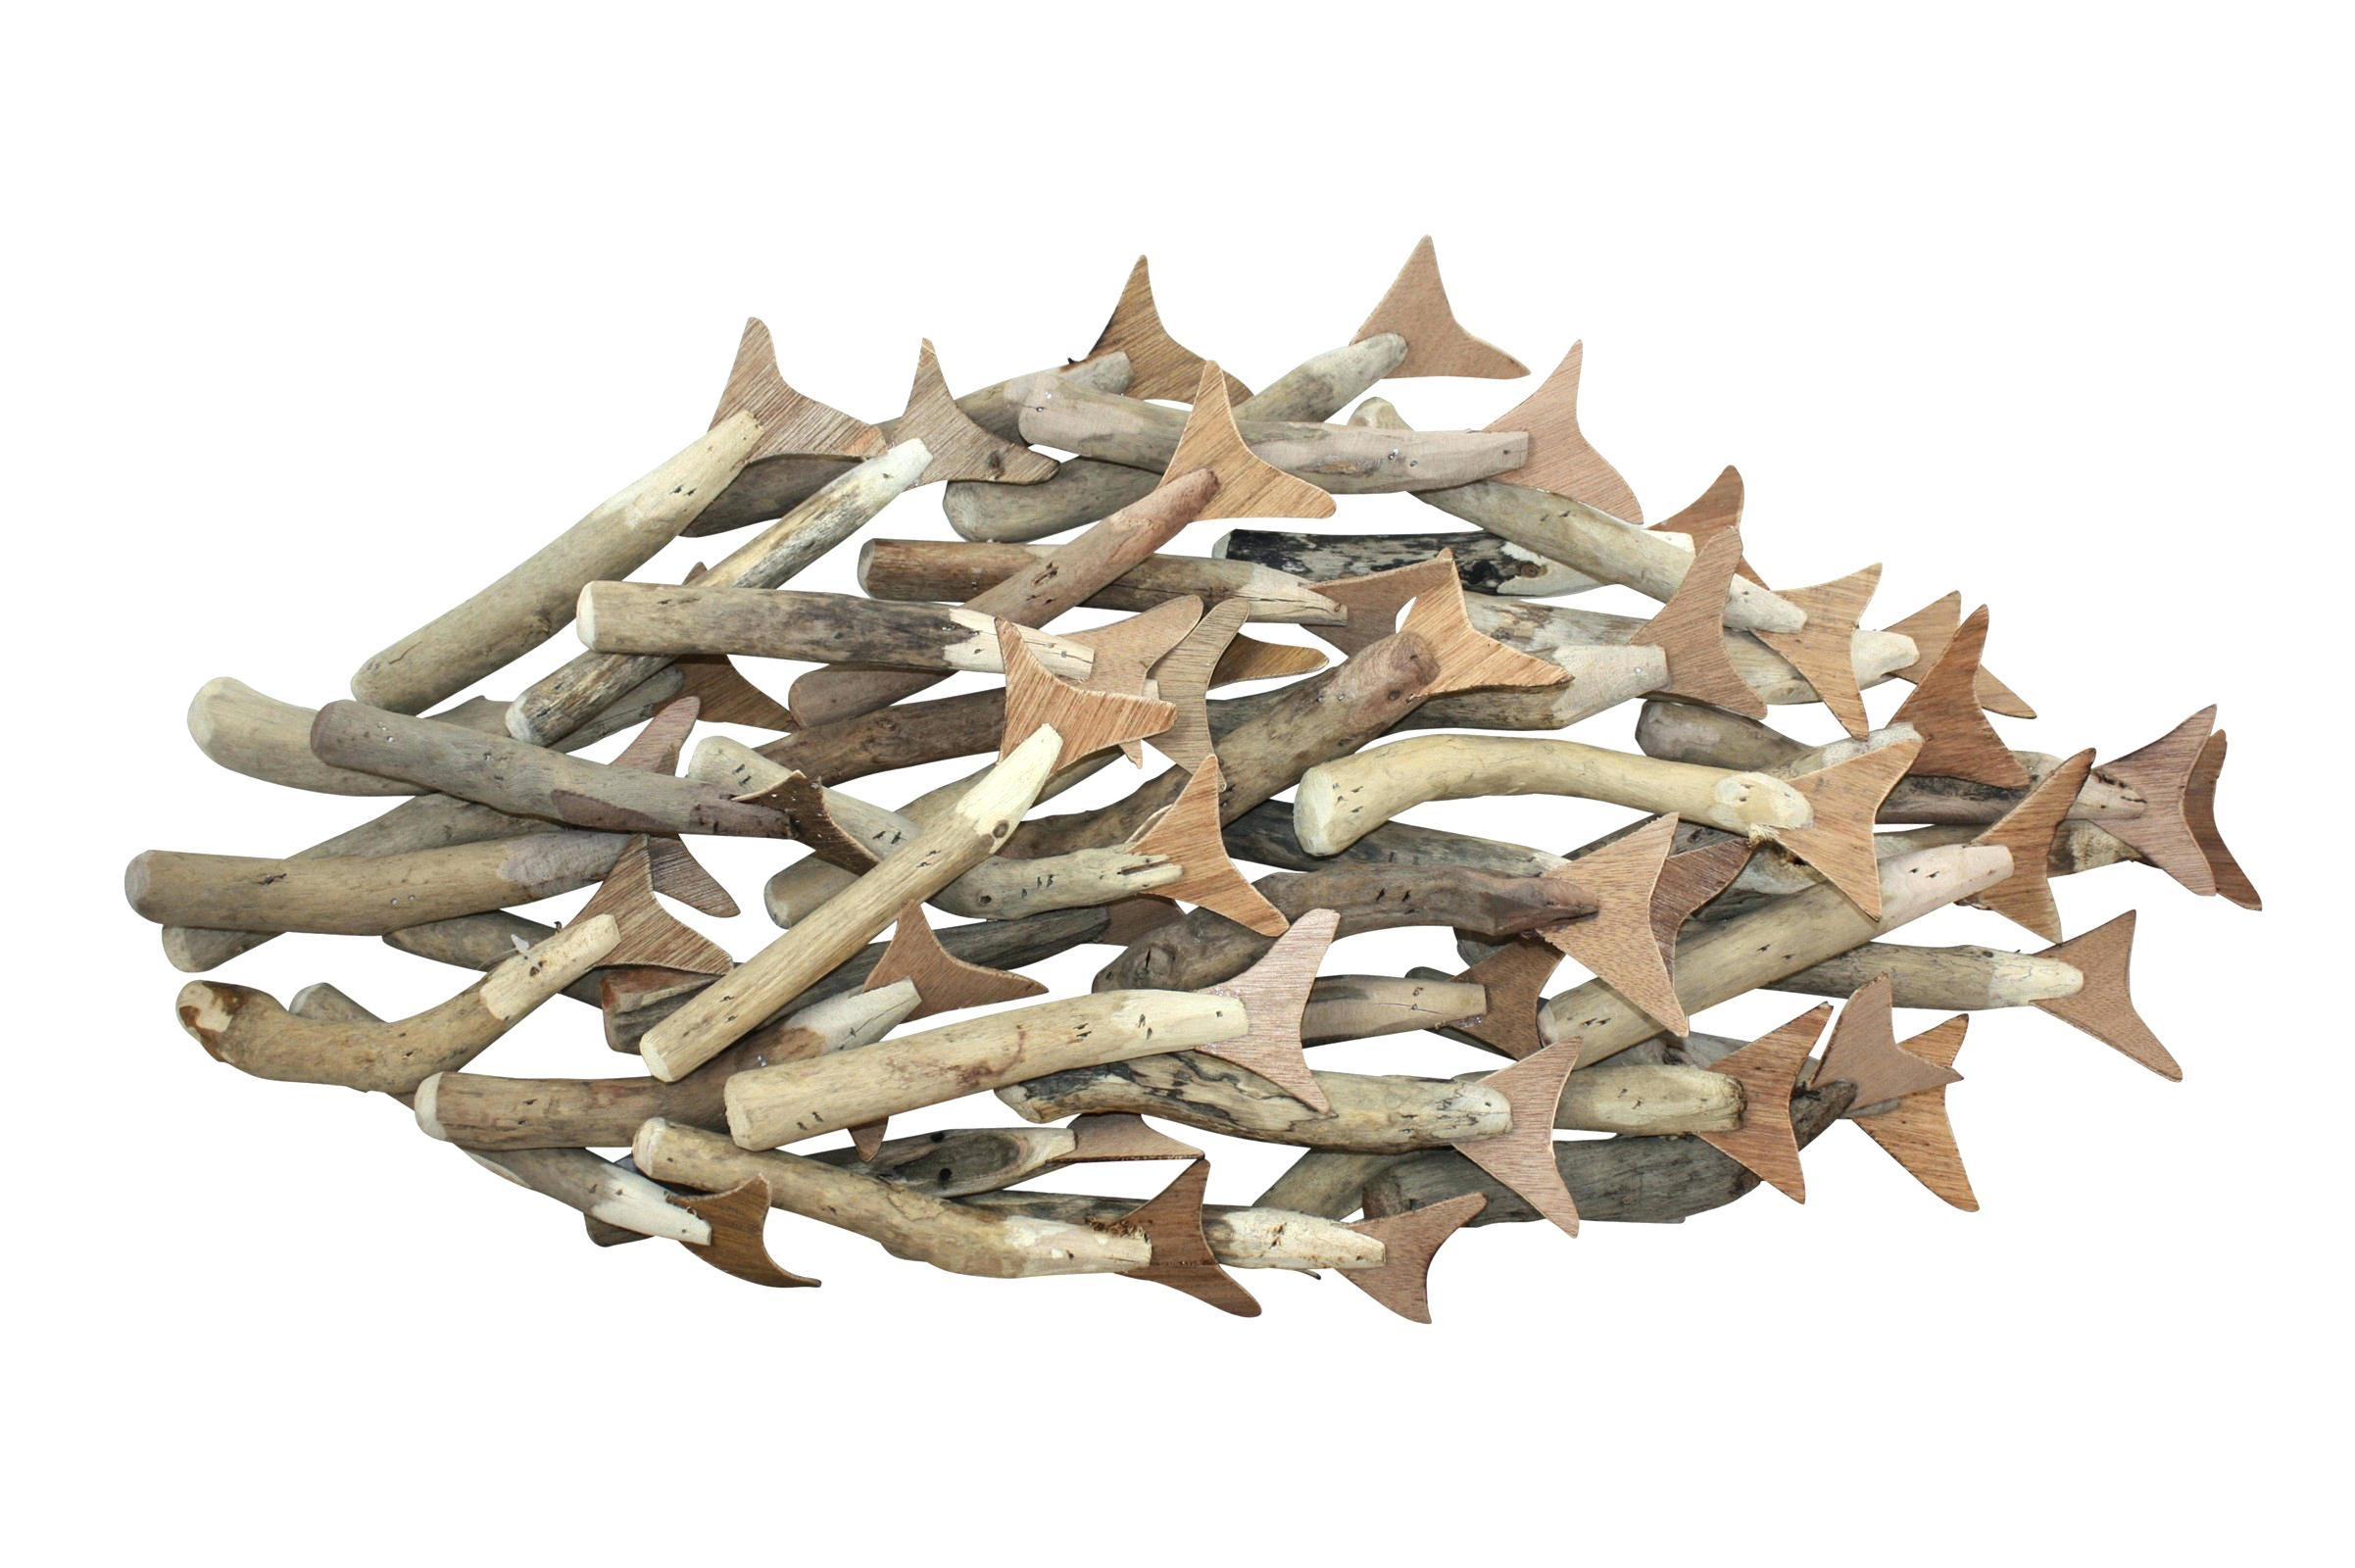 Wall Ideas : Fish Wall Art Metal Fish Art Decor Large Wooden Fish Throughout Mexican Ceramic Wall Art (Image 11 of 20)